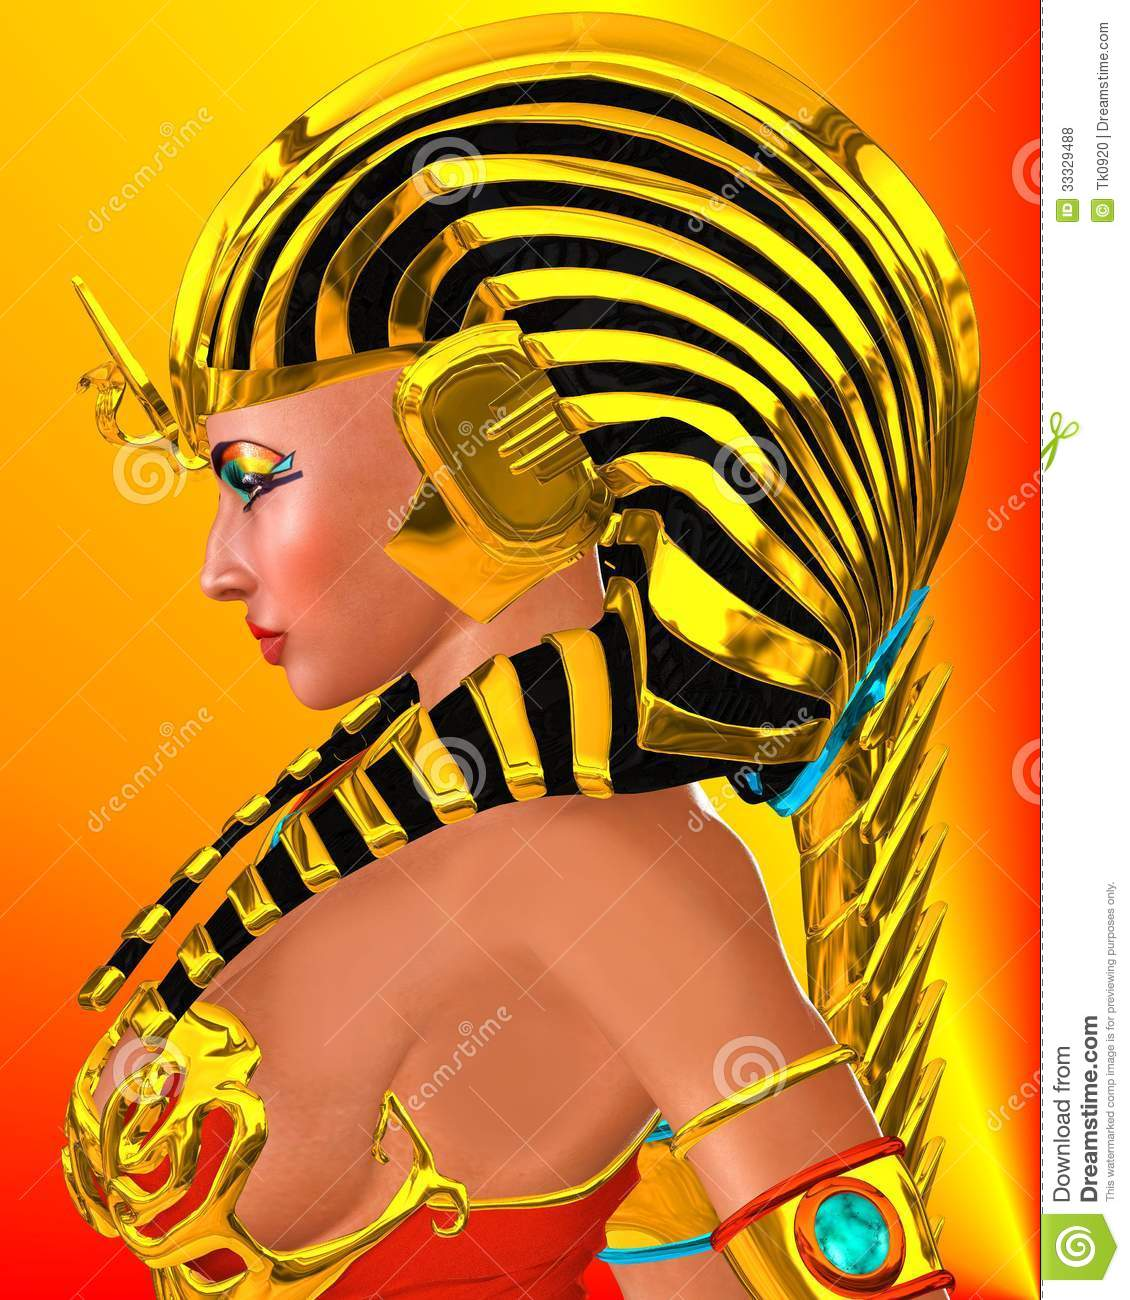 ... woman Pharaoh Queen on abstract orange and red background. Artistic